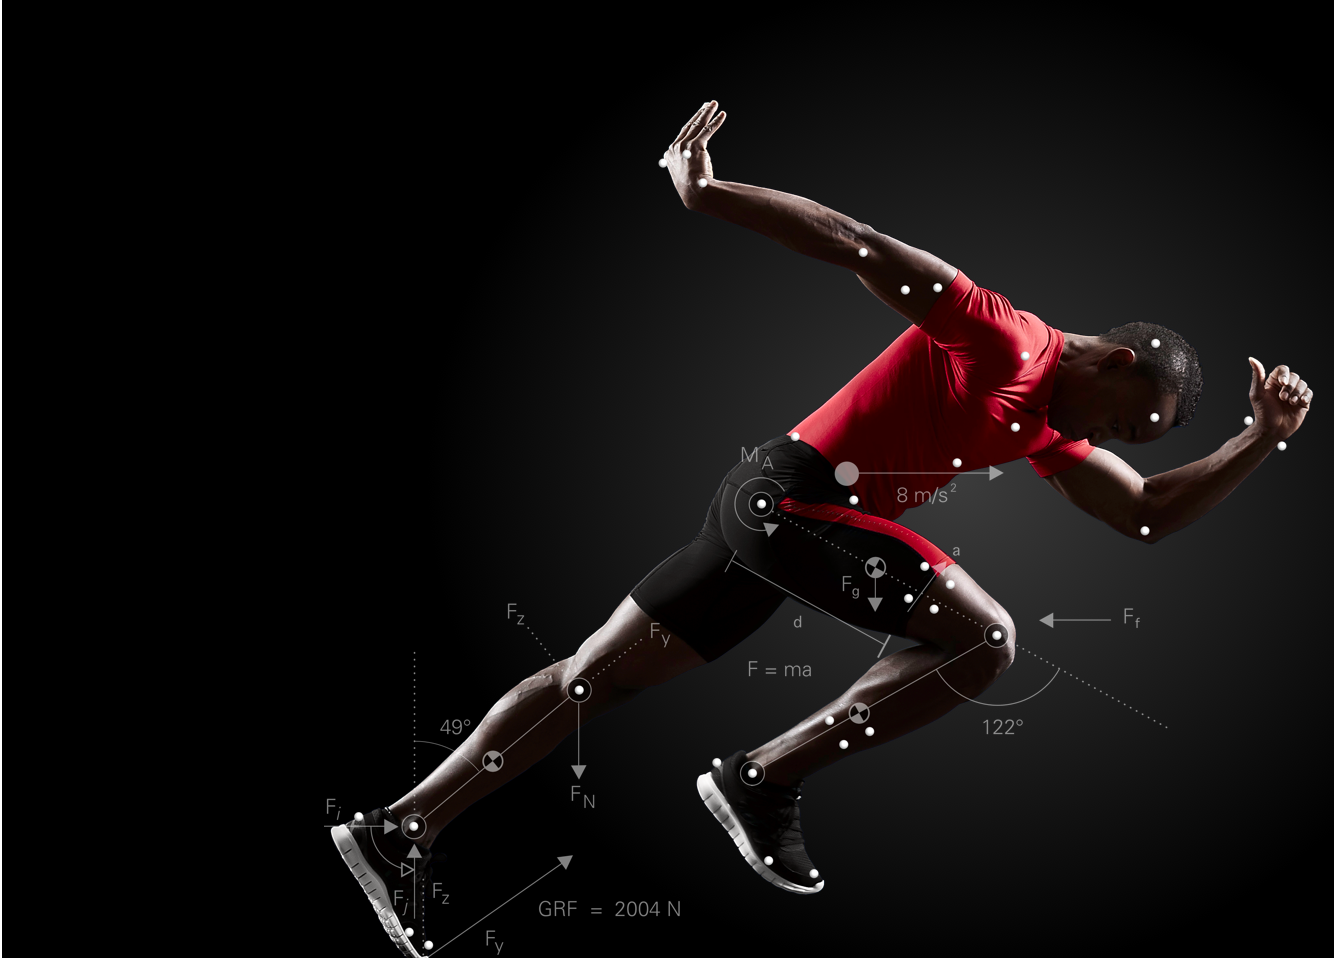 Sprinter with motion capture markers and metrics overlaid